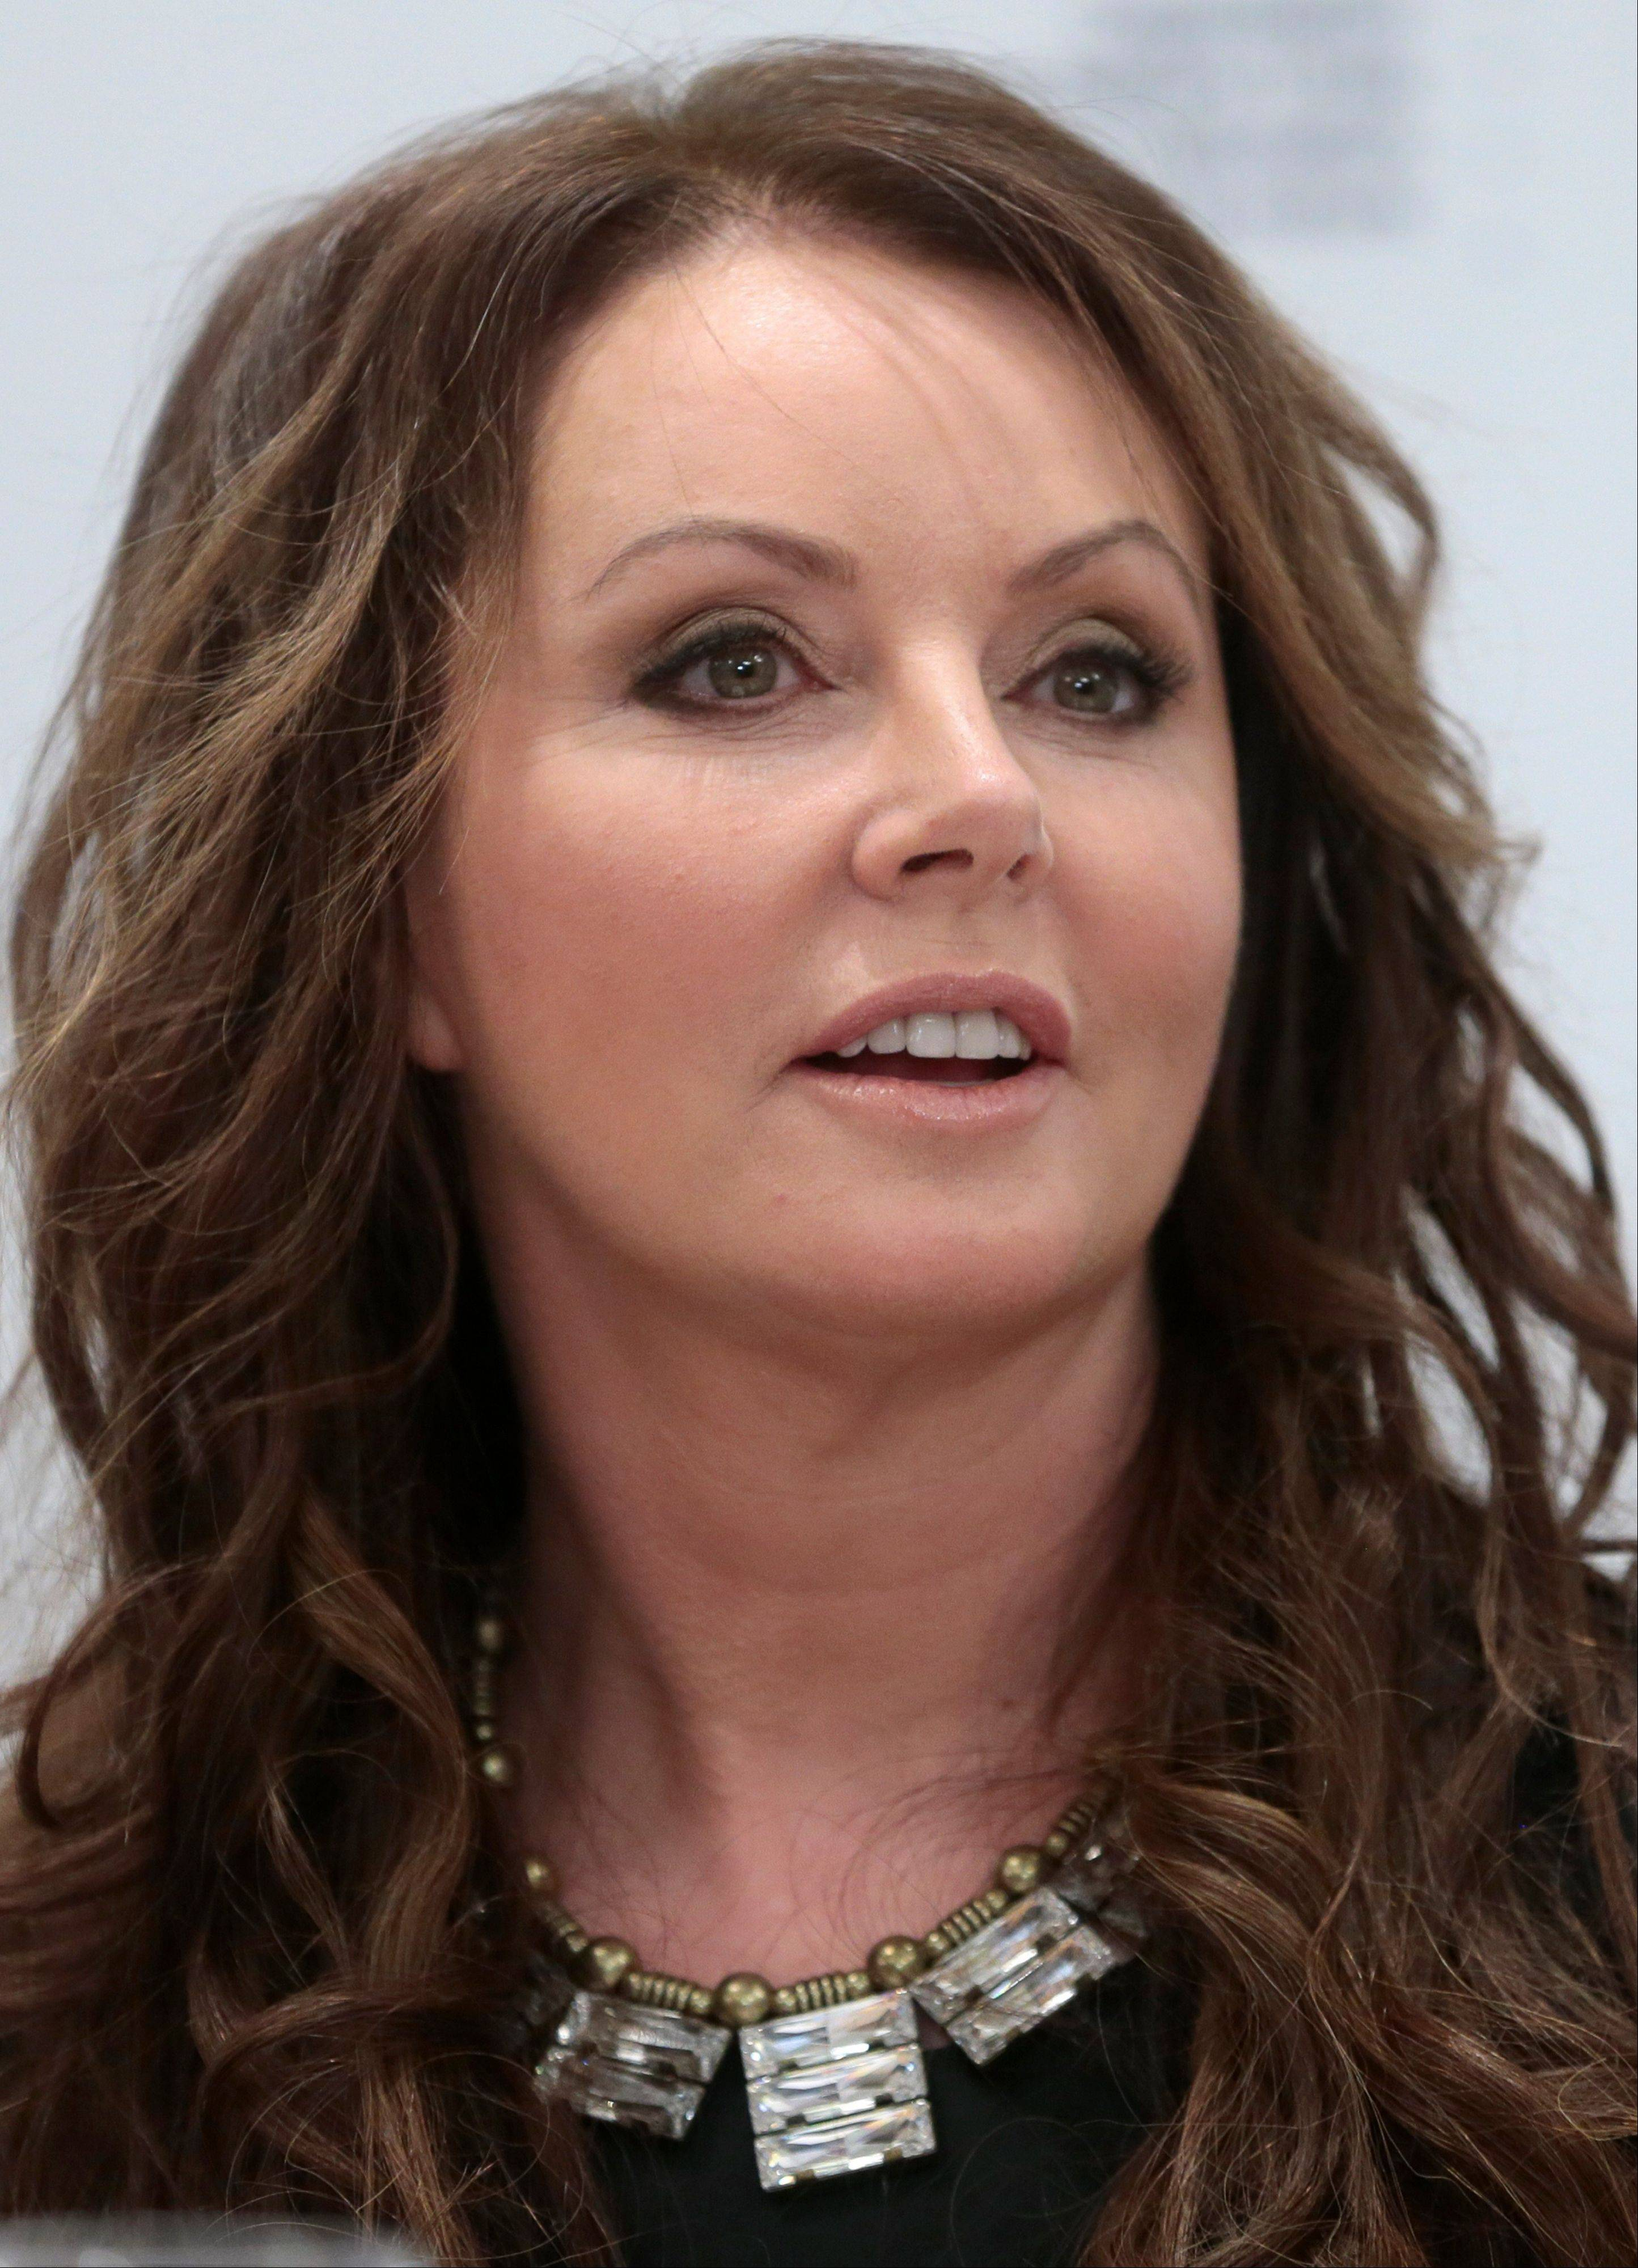 British singer Sarah Brightman is to become the first global recording artist to take a spaceflight, teaming up with Space Adventures for a journey to the International Space Station.